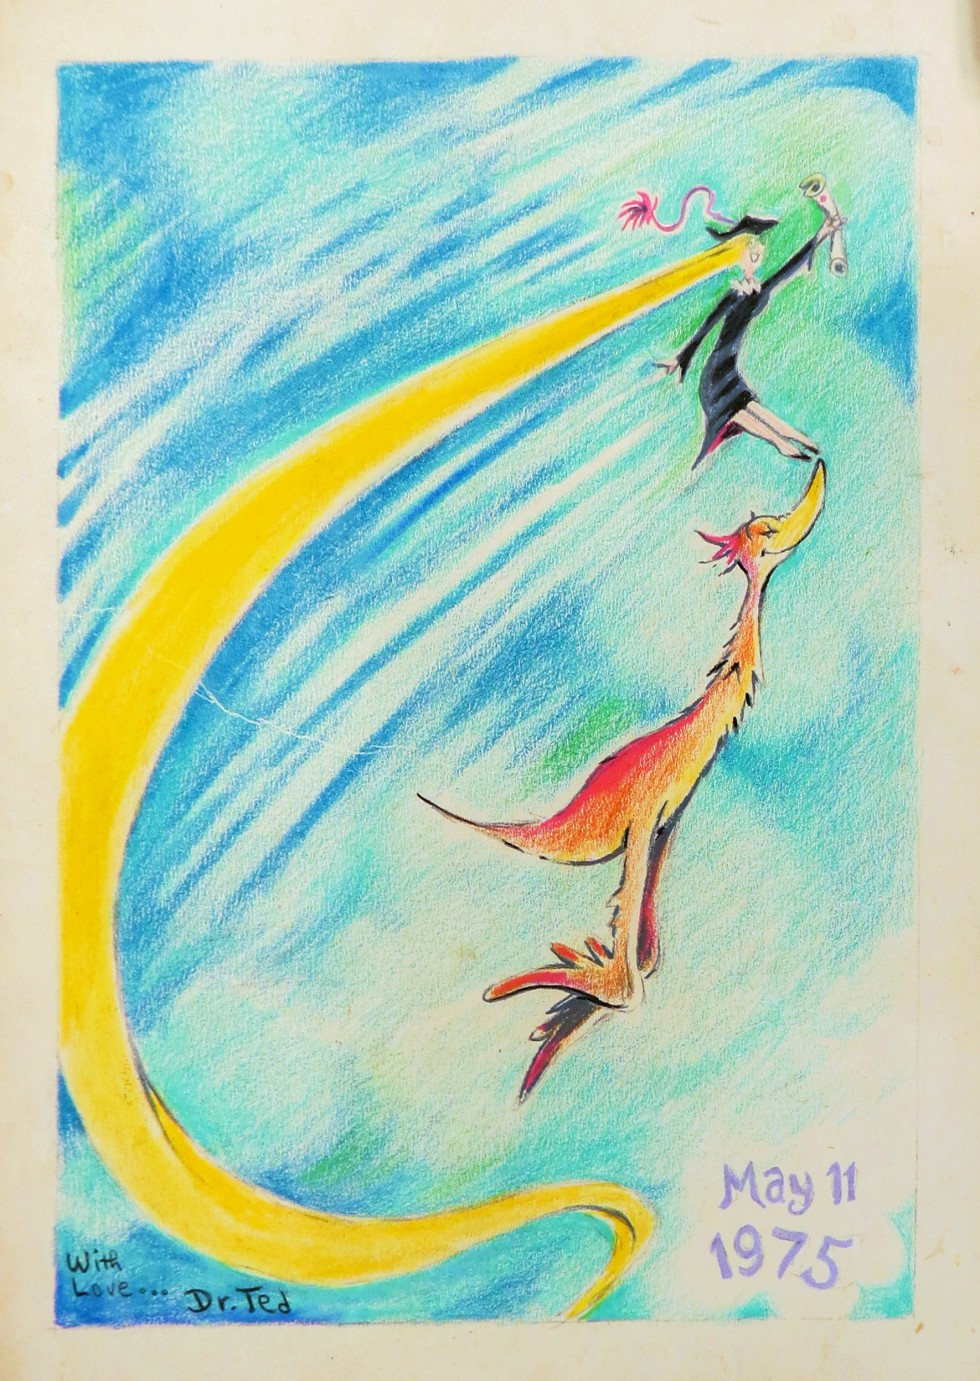 One of many drawings by Dr. Seuss donated by Lark Grey Dimond-Cates, step-daughter of the late Theodor S. Geisel.